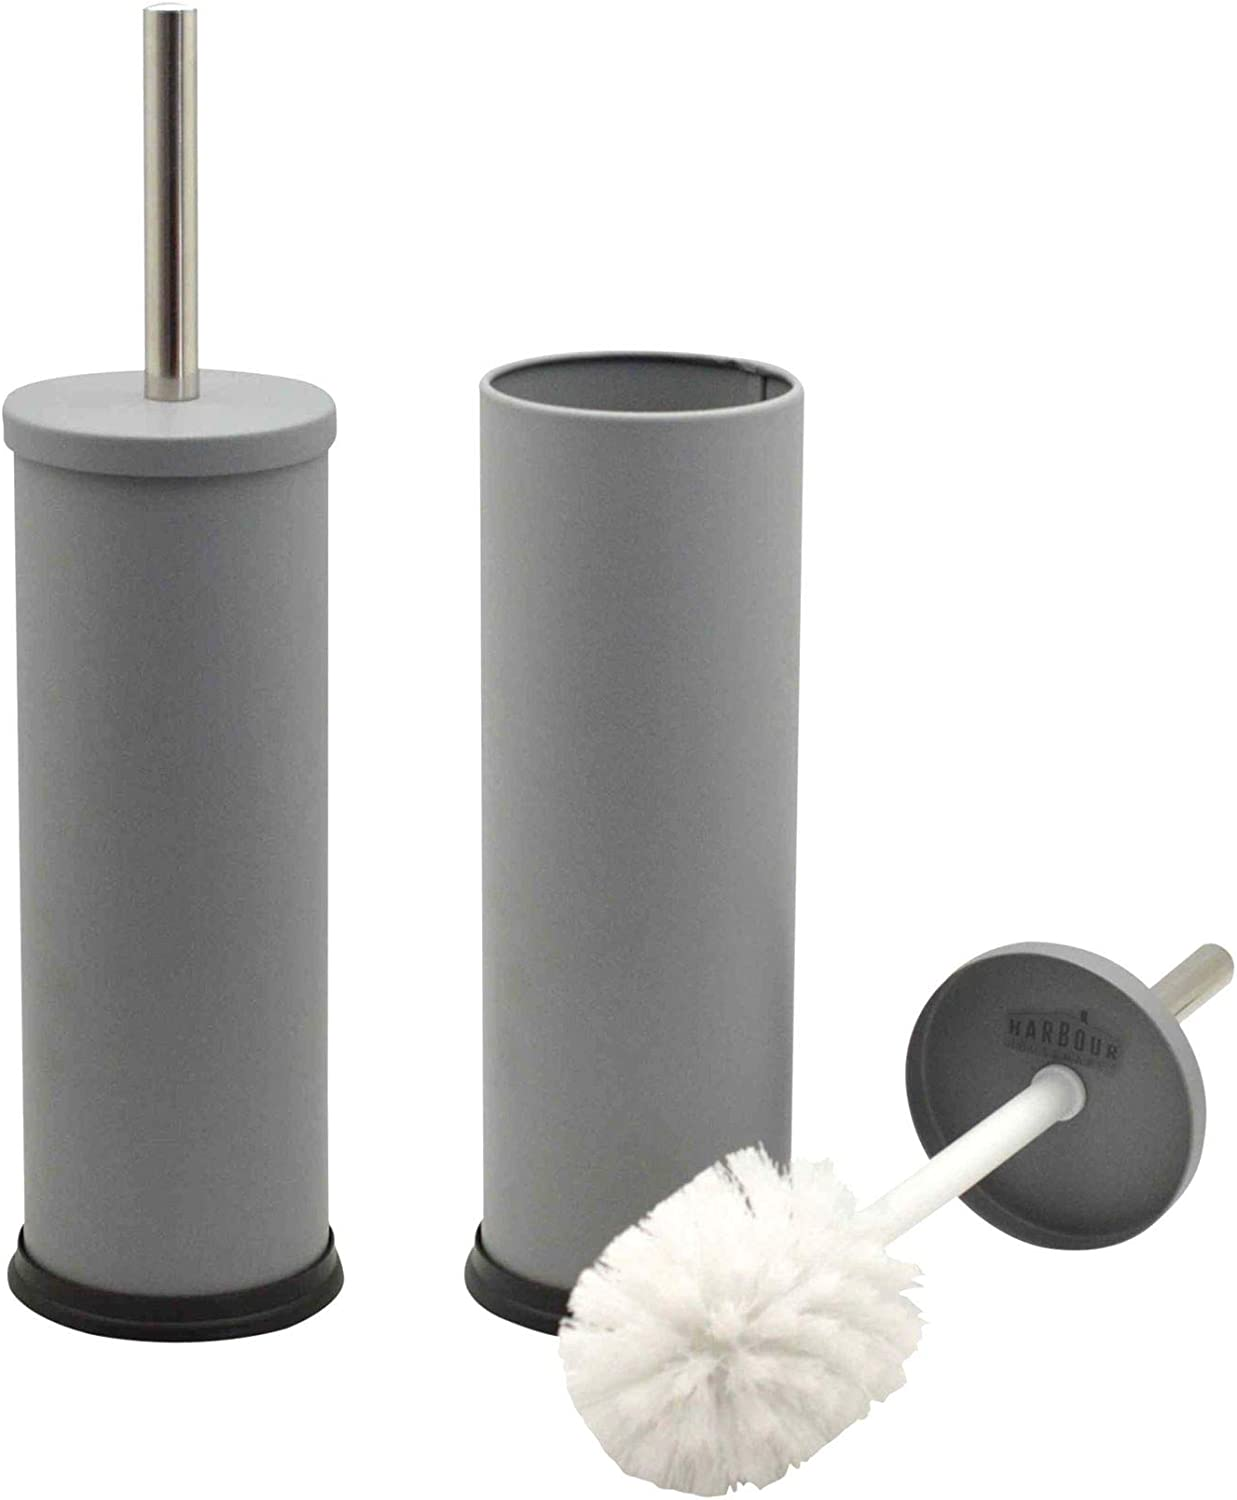 Harbour Housewares Bathroom Toilet Brush Holder Max 58% OFF Stainl Set Tulsa Mall and -